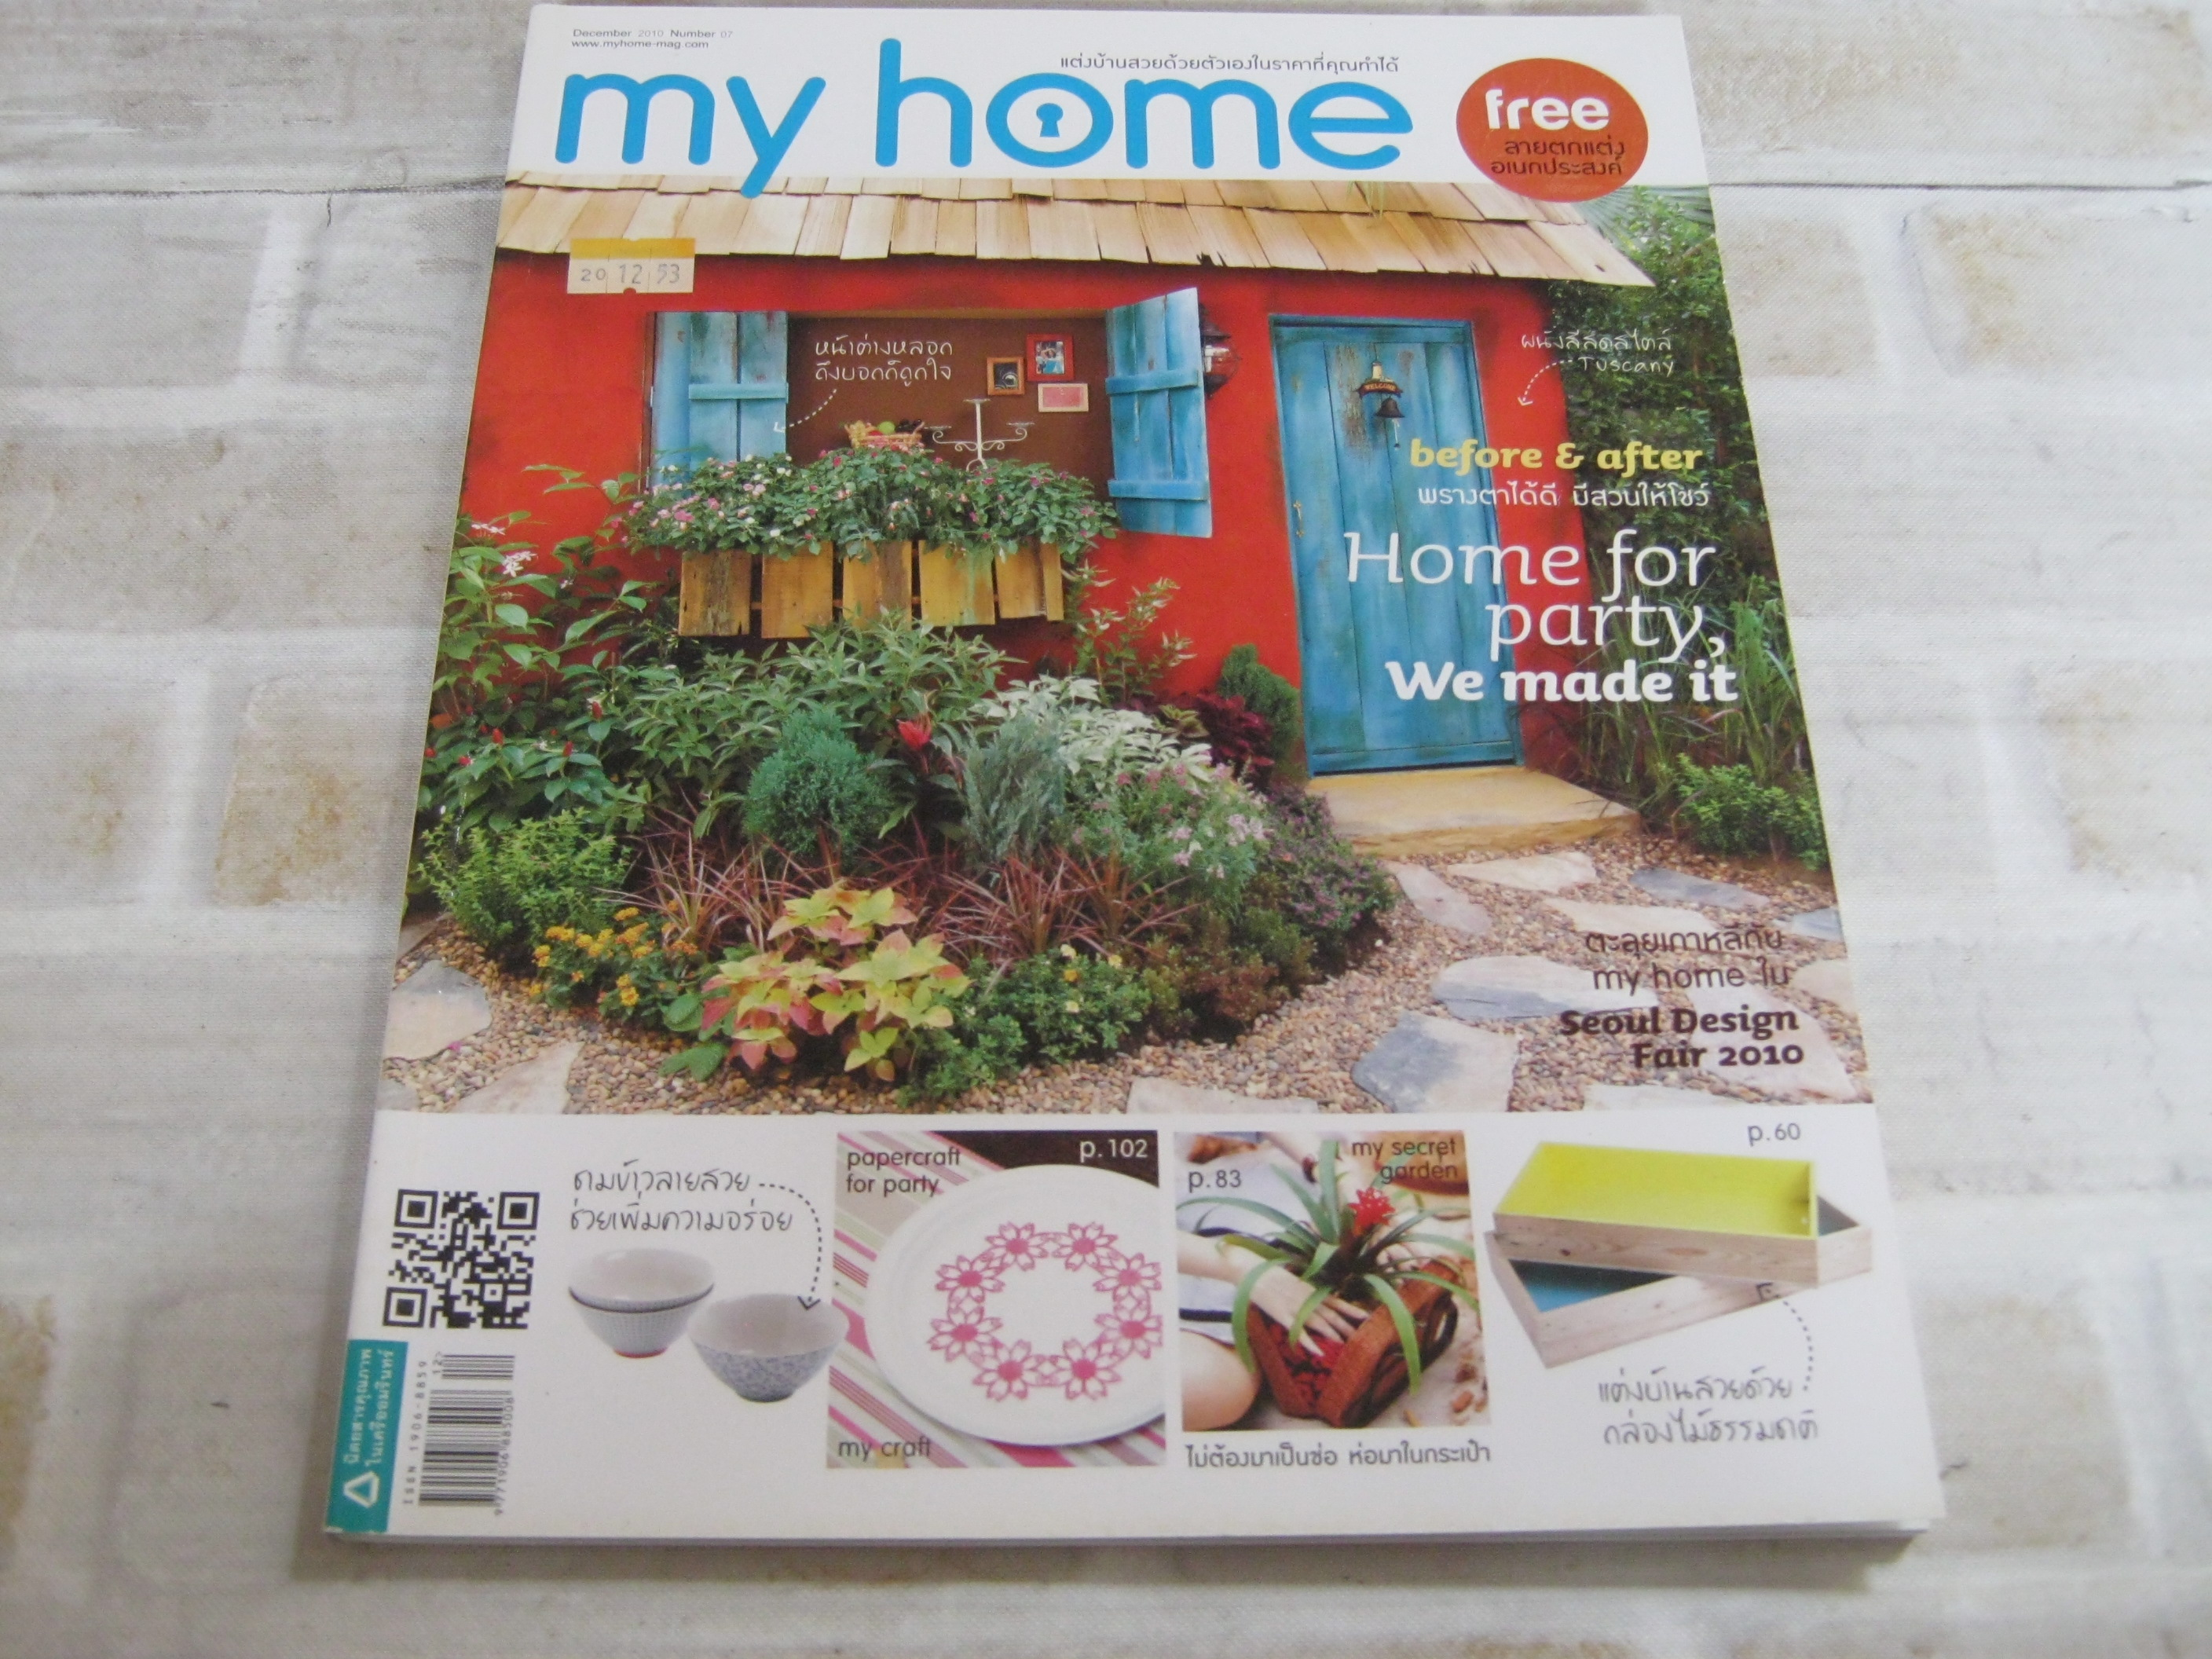 my home ฉบับที่ 7 ธันวาคม 2553 Home for party, We made it